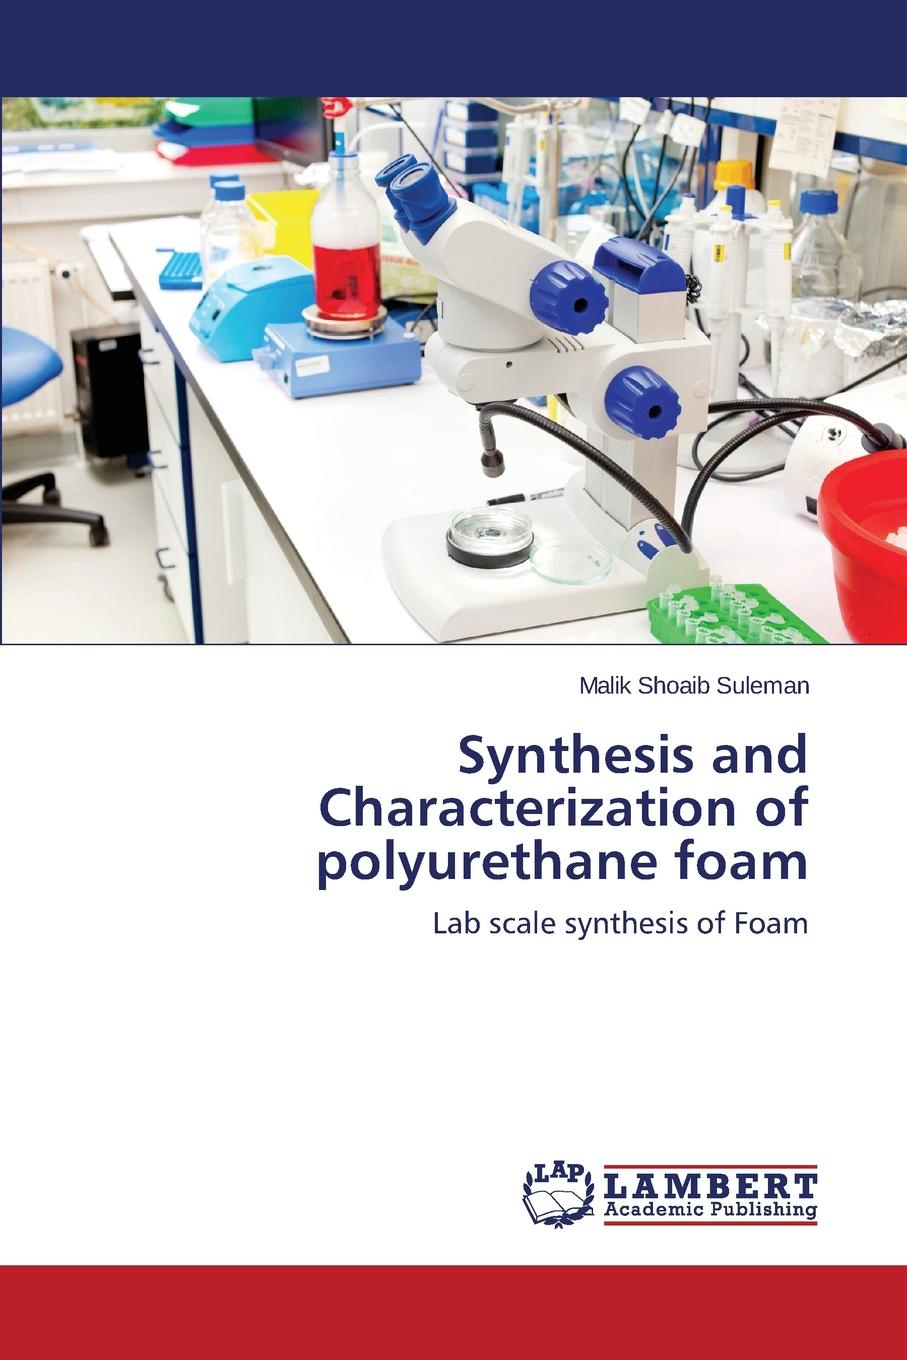 Suleman Malik Shoaib Synthesis and Characterization of polyurethane foam freya north chloe